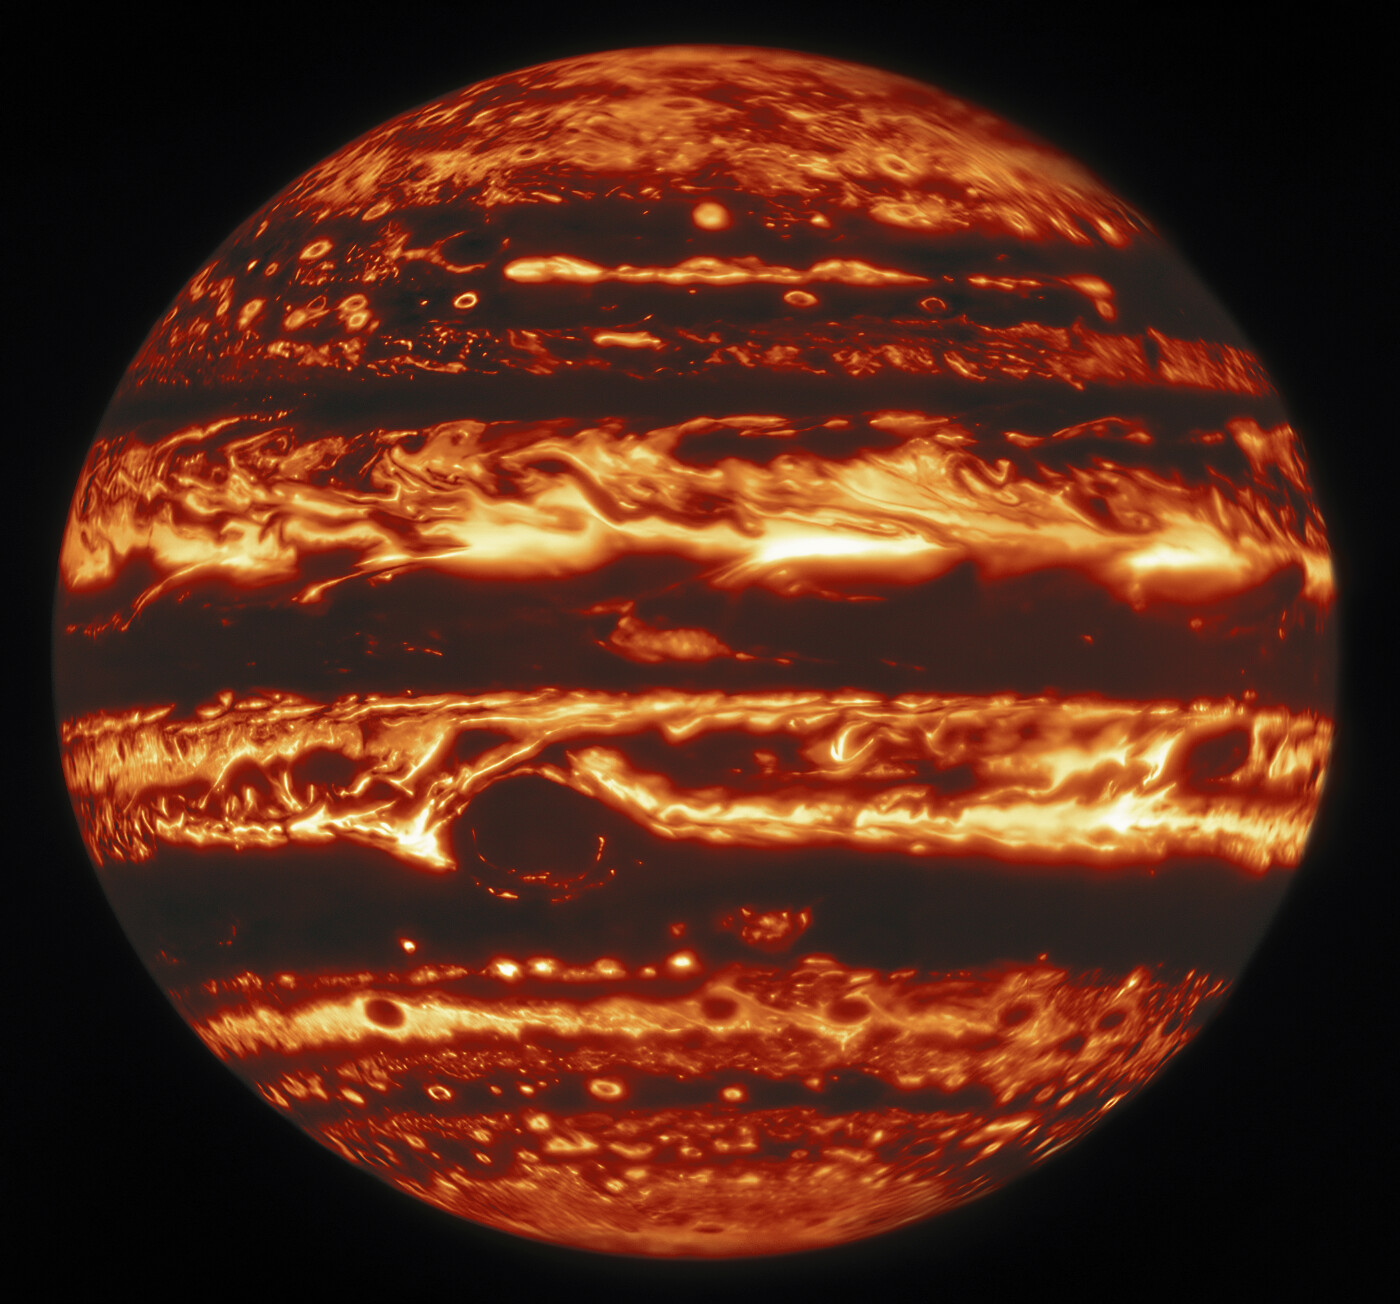 By Jove! Jupiter Shows Its Stripes and Colors